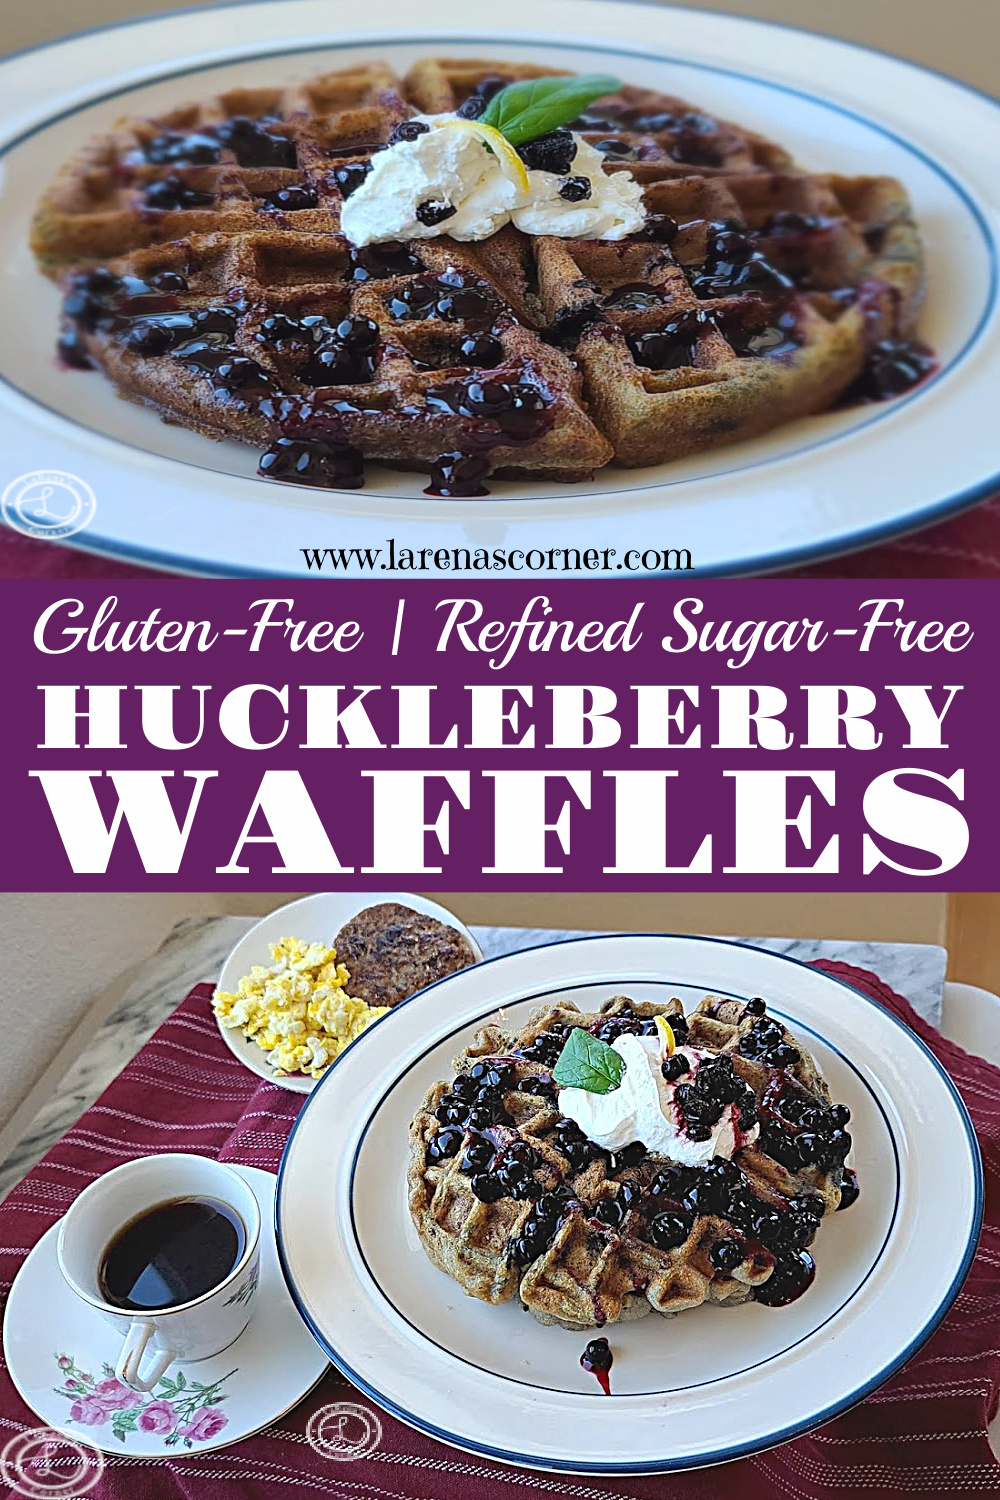 Two pictures of gluten-free huckleberry waffles. One closeup of a waffle with huckleberry sauce, whipped cream, sliver of lemon, and mint. Second picture of a whole complete breakfast, one waffle with toppings, cup of espresso, scrambled egg, and one sausage.